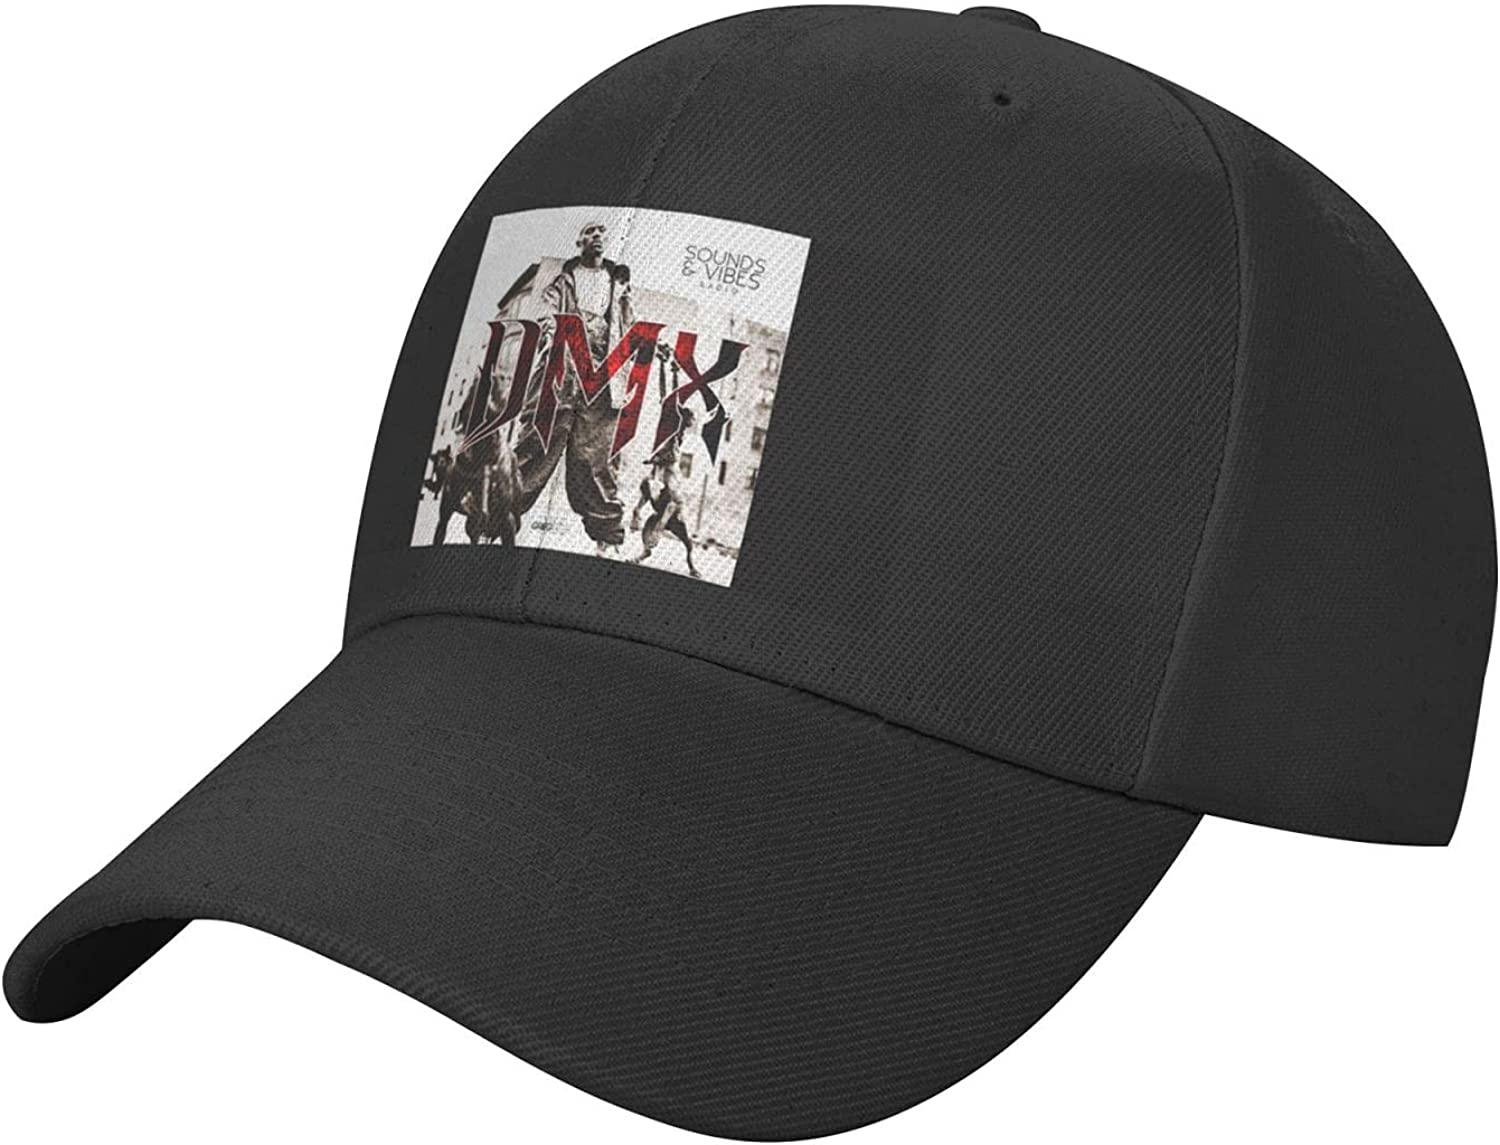 Ruff Ryders Pointed Cap. Men's Caps, Baseball Caps, Solid Color Caps Be Suitable for Men and Women